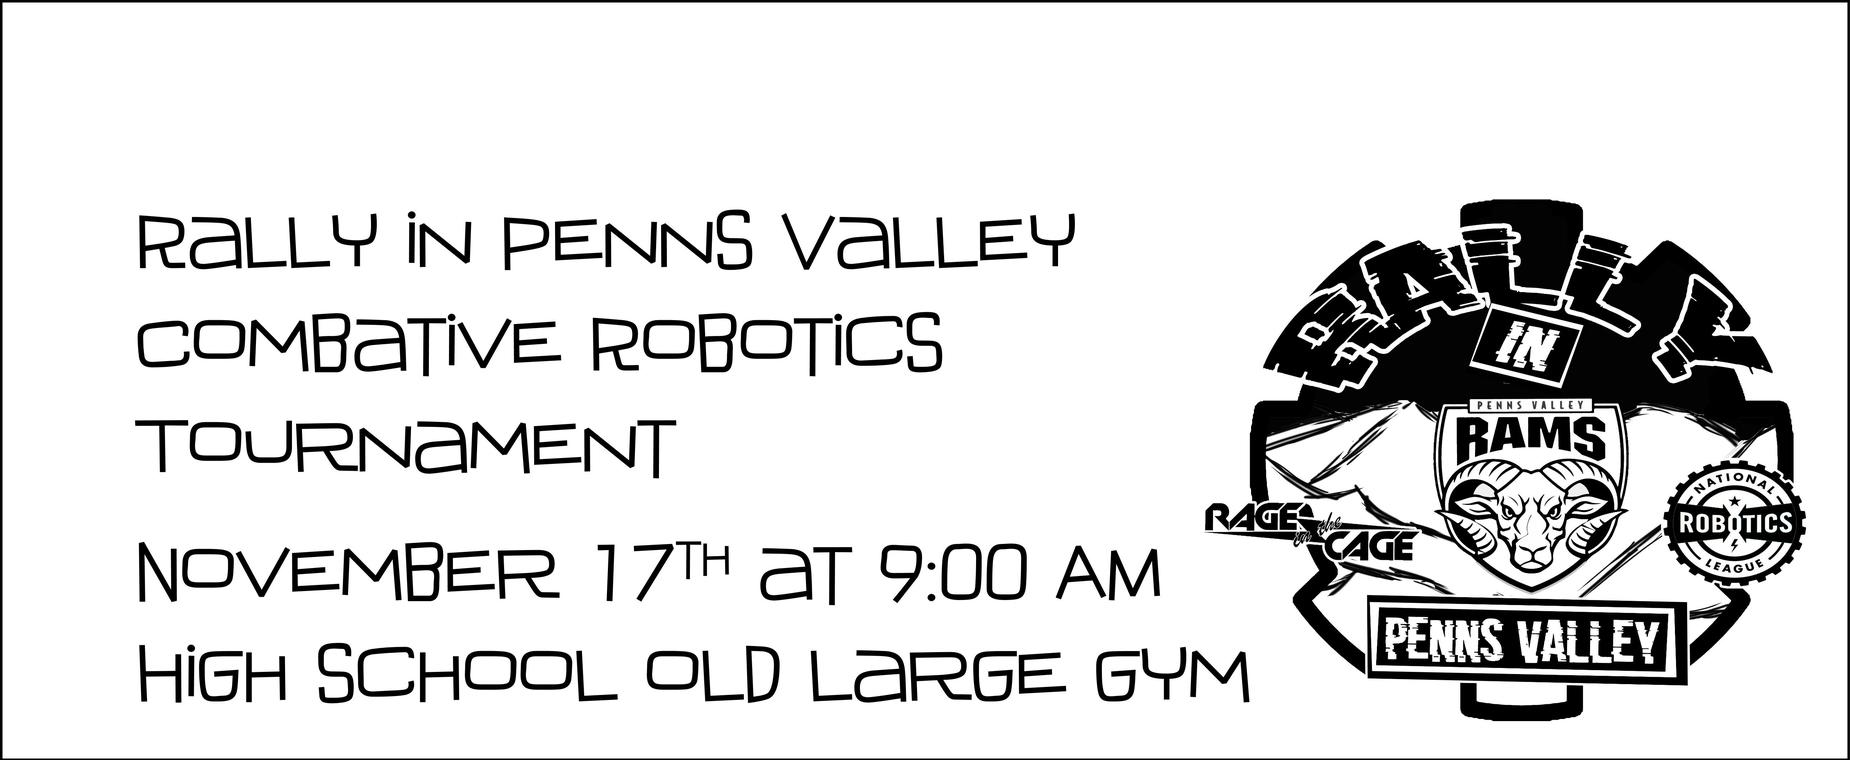 battlebots november 17 9 am high school old big gym